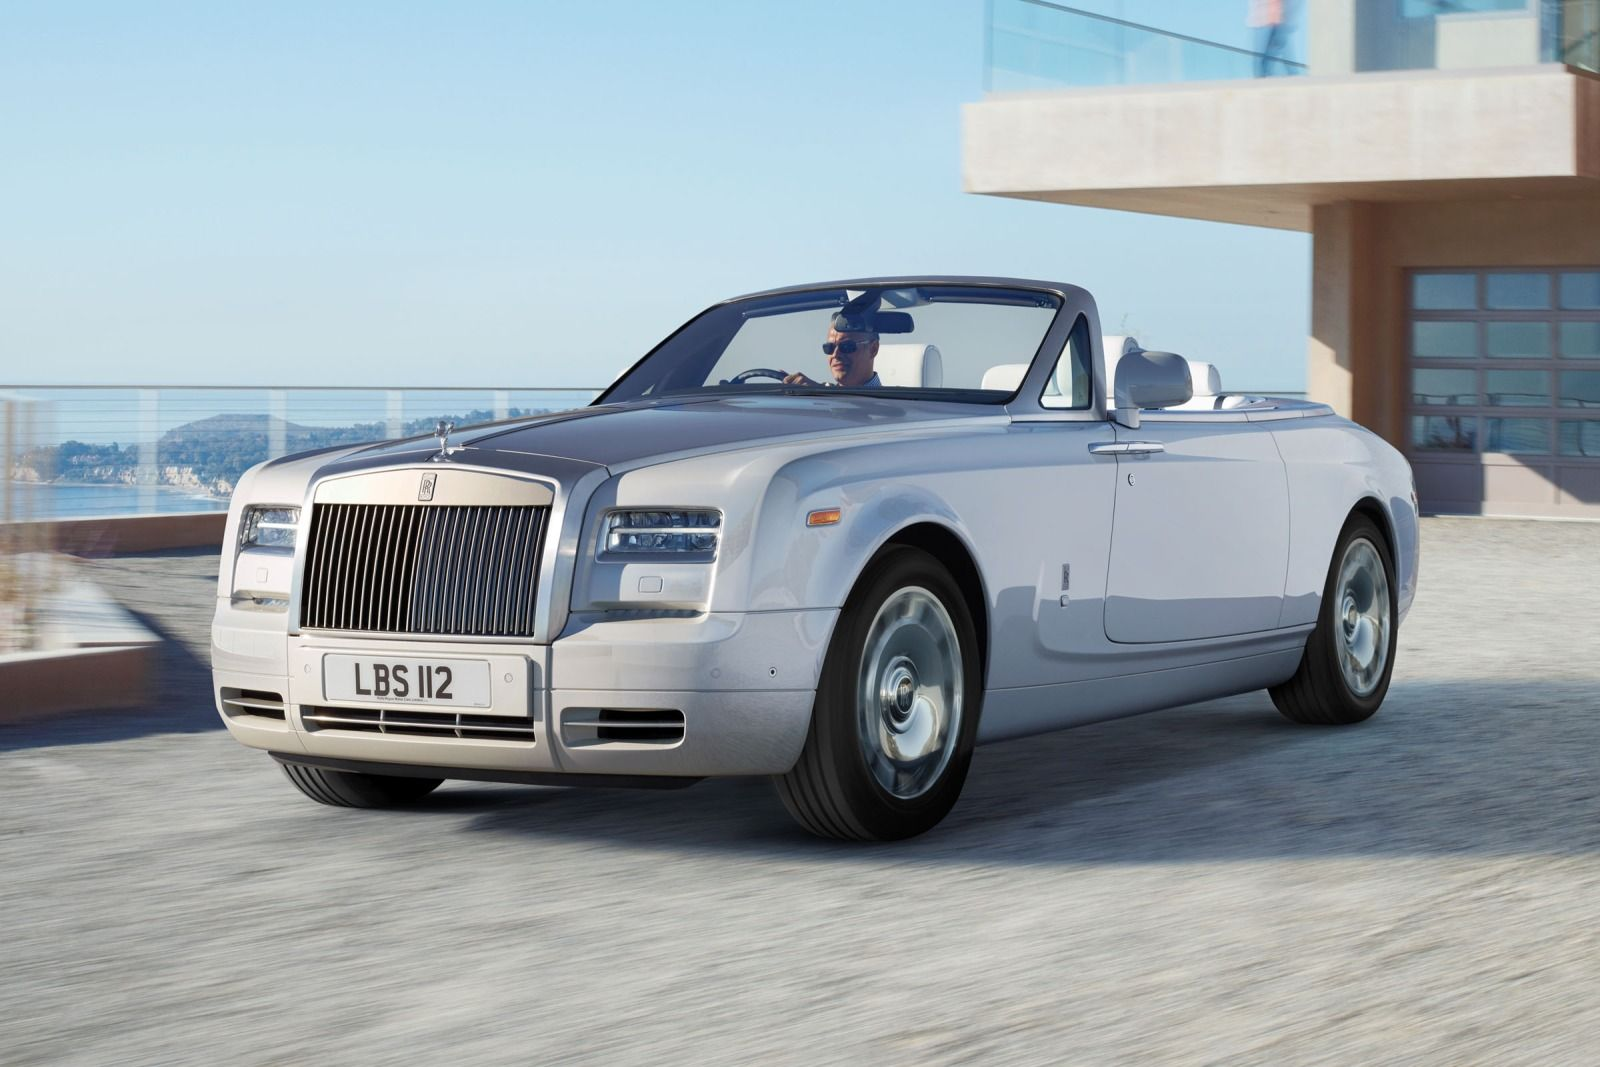 2014 Rolls royce Phantom Drophead Coupe #22